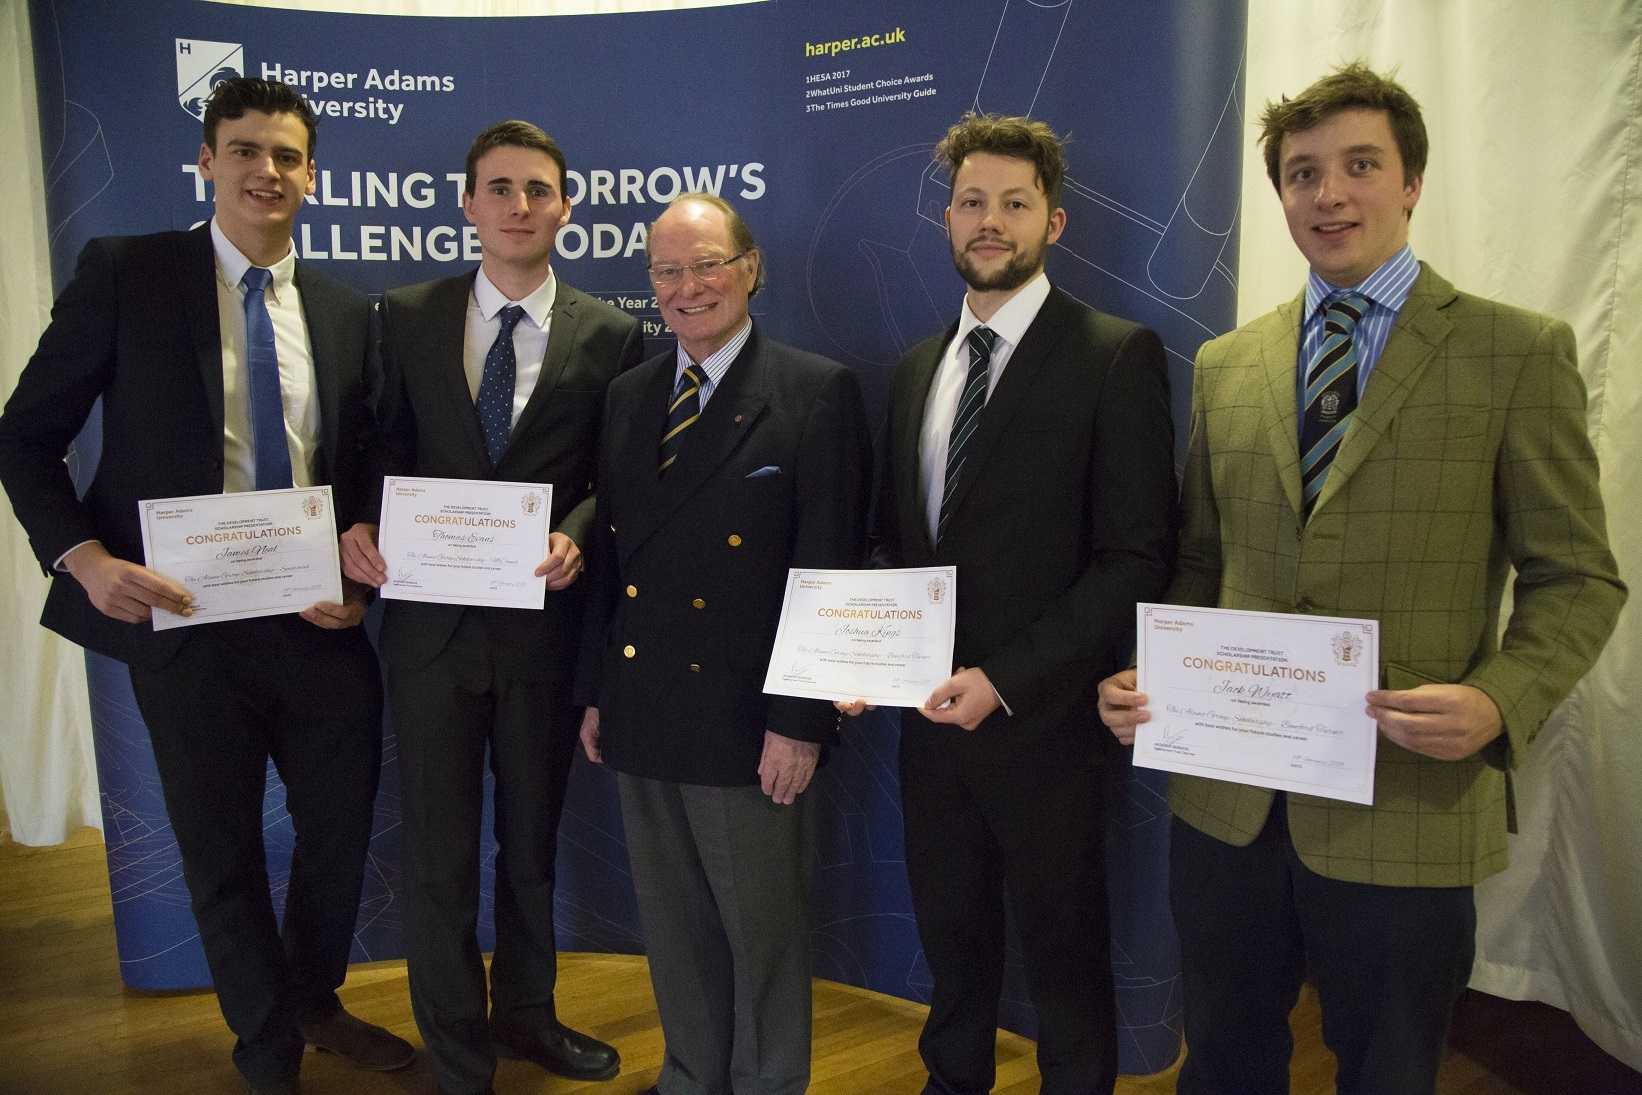 Dr Geoffery Davies MBE with James Neal, Thomas Evans, Joshua Kings and Jack Wyatt